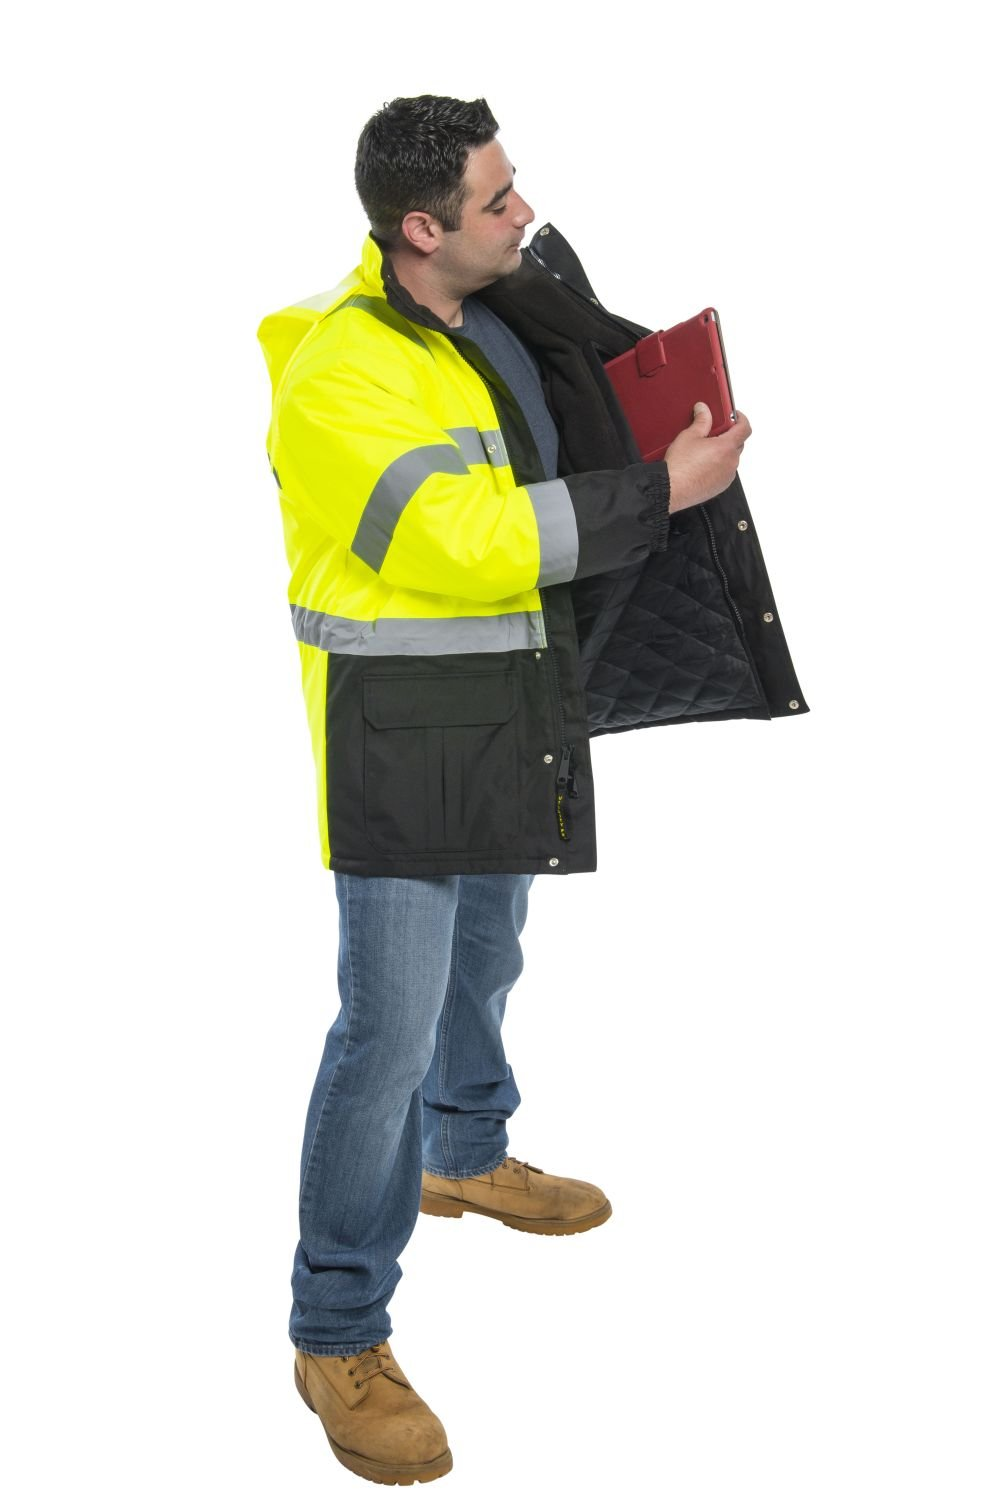 Utility Pro UHV1004 Nylon Quilted Lining High-Vis Contractor Parka Jacket with Dupont Teflon fabric protector,  Lime/Black,  X-Large by Utility Pro (Image #5)